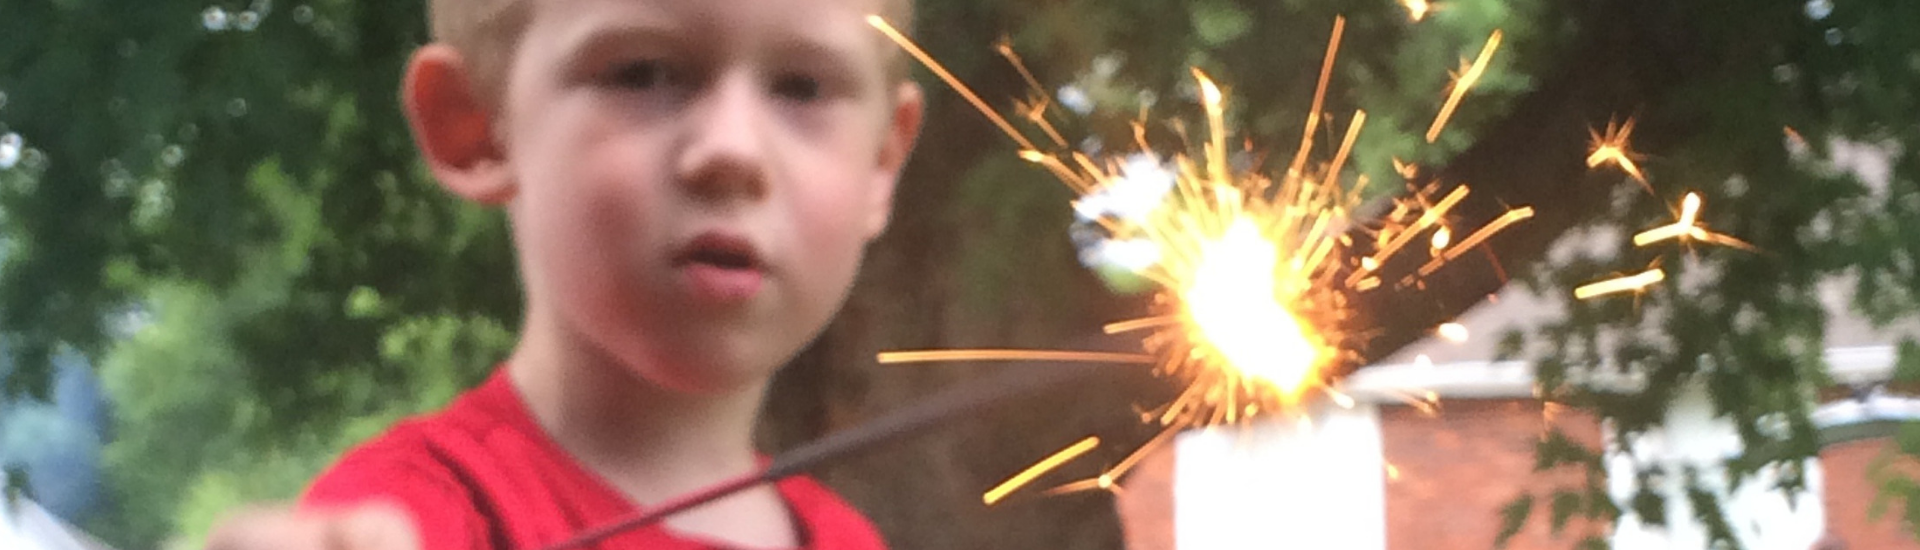 young boy with sparkler